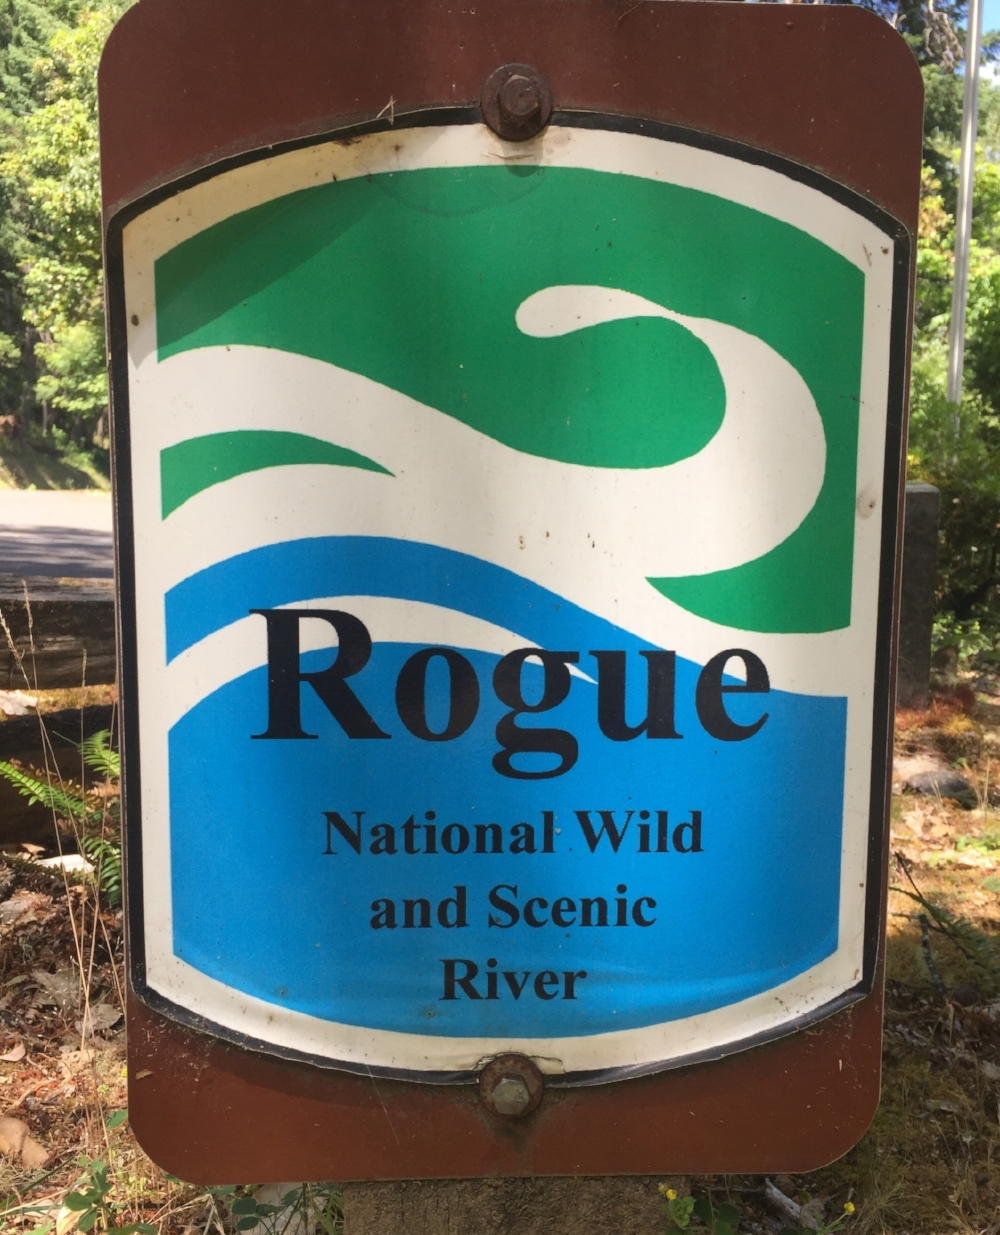 The Rogue was one of eight original river designated Wild & Scenic in 1968.